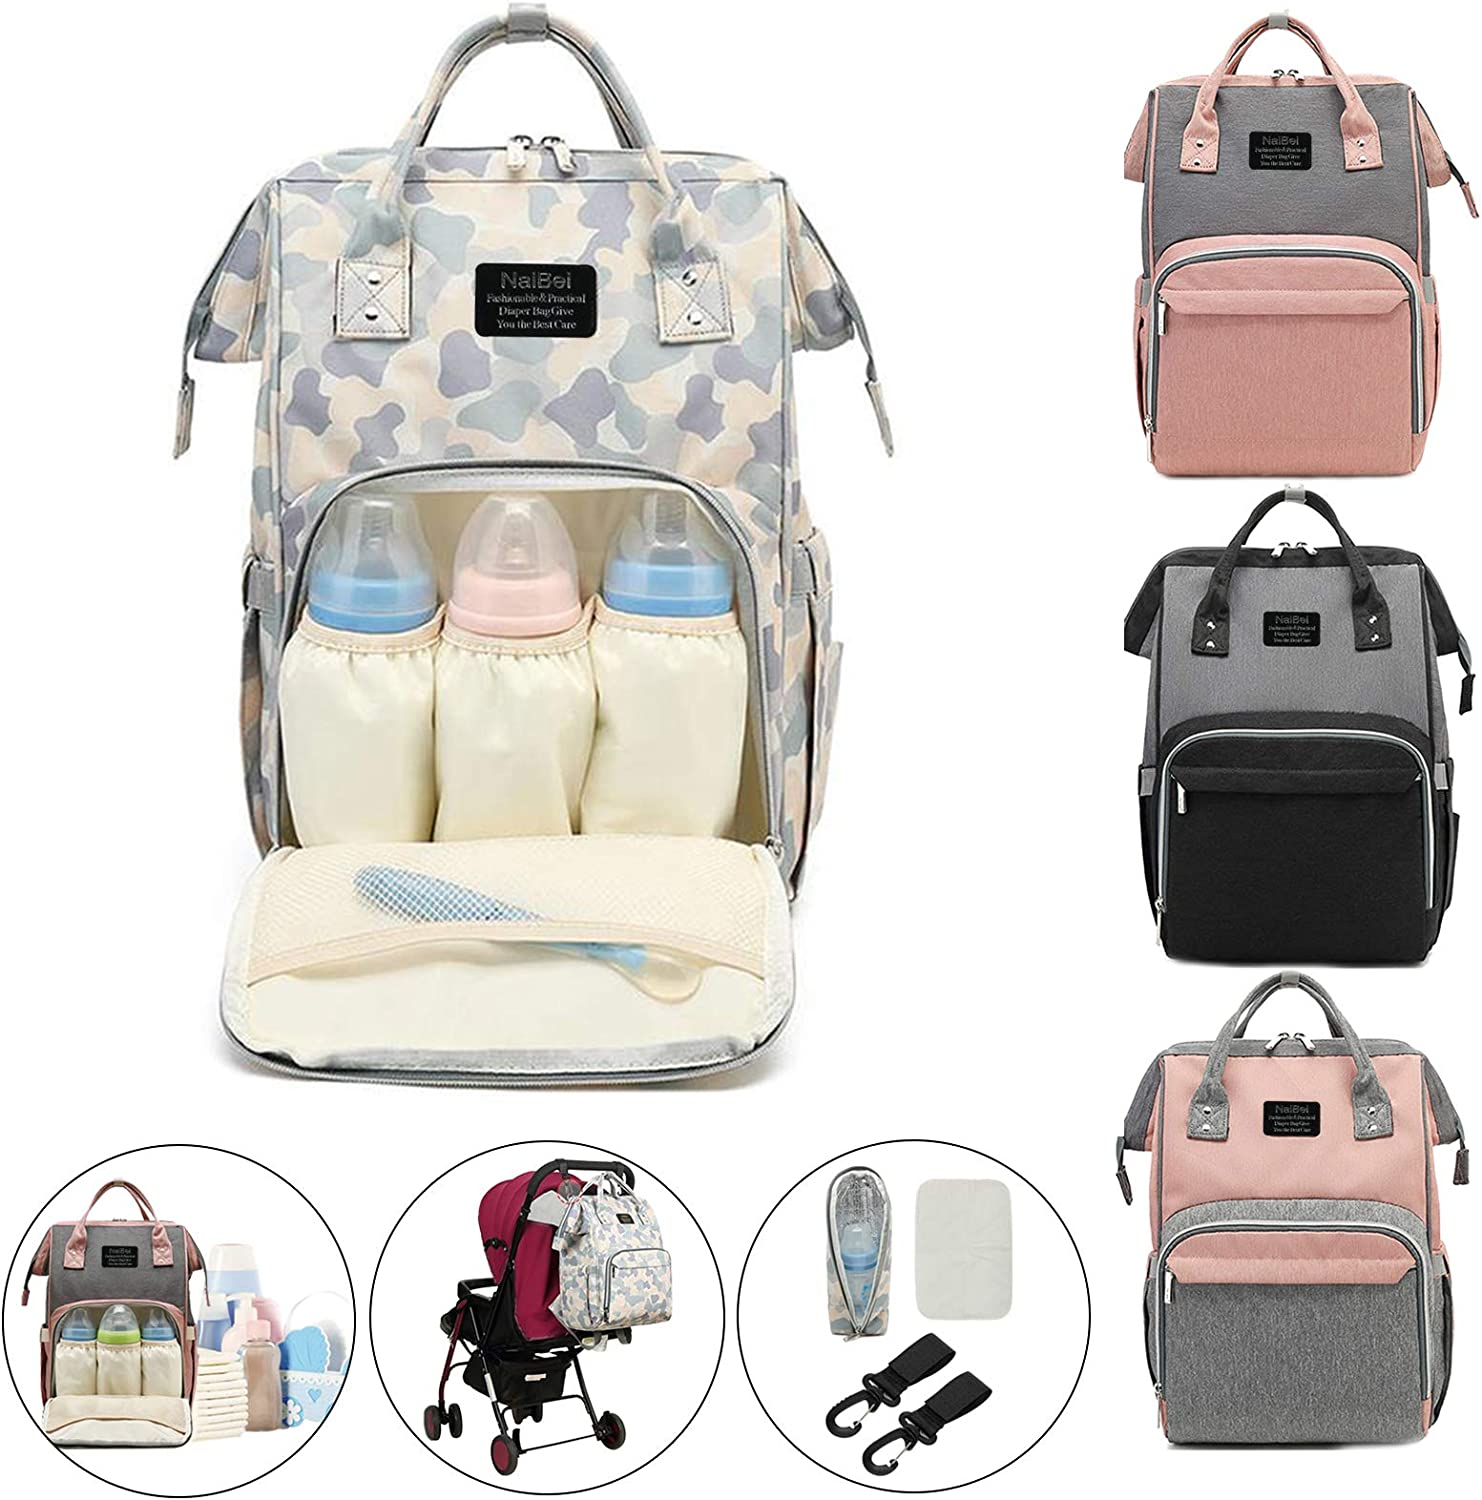 ColdShine Diaper Bag Nappy Changing Backpack Waterproof Multifunctional Mommy Nursing Bag Travel Backpack Large Capacity Tote Shoulder Organizer for Baby Care,Camouflage